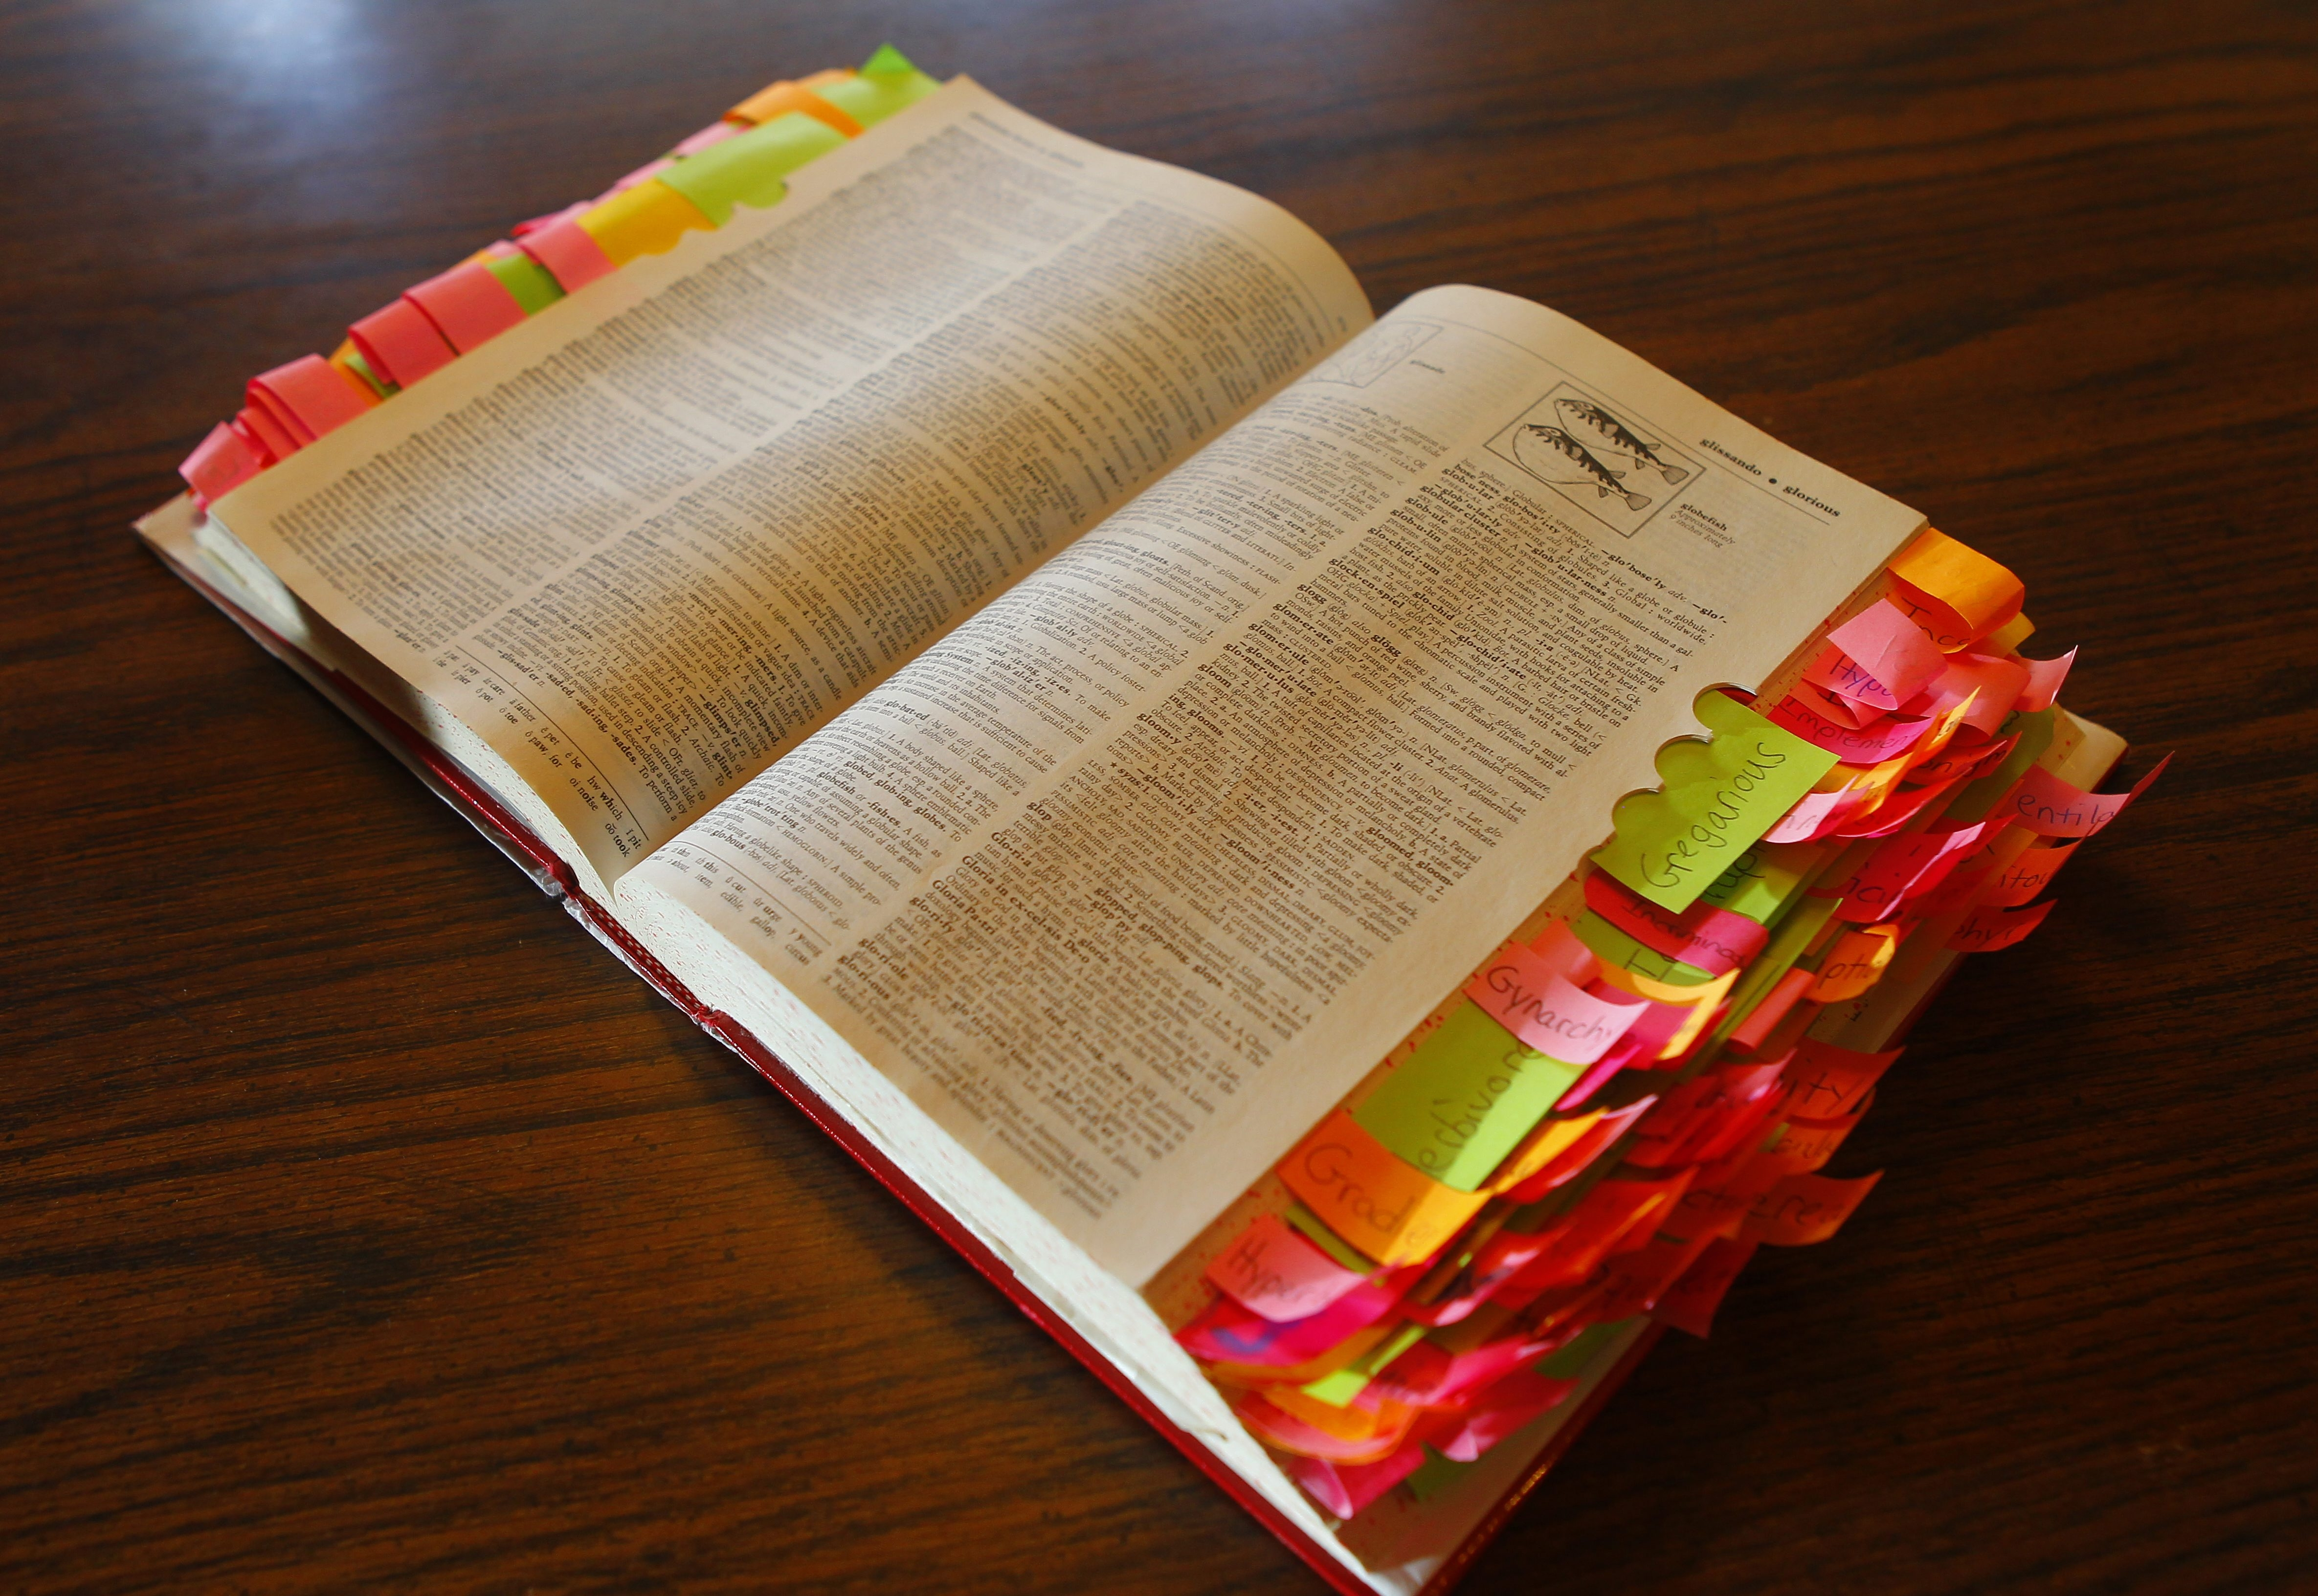 A blizzard of colorful sticky notes bookmarks the Pivarunas family's well-used dictionary.